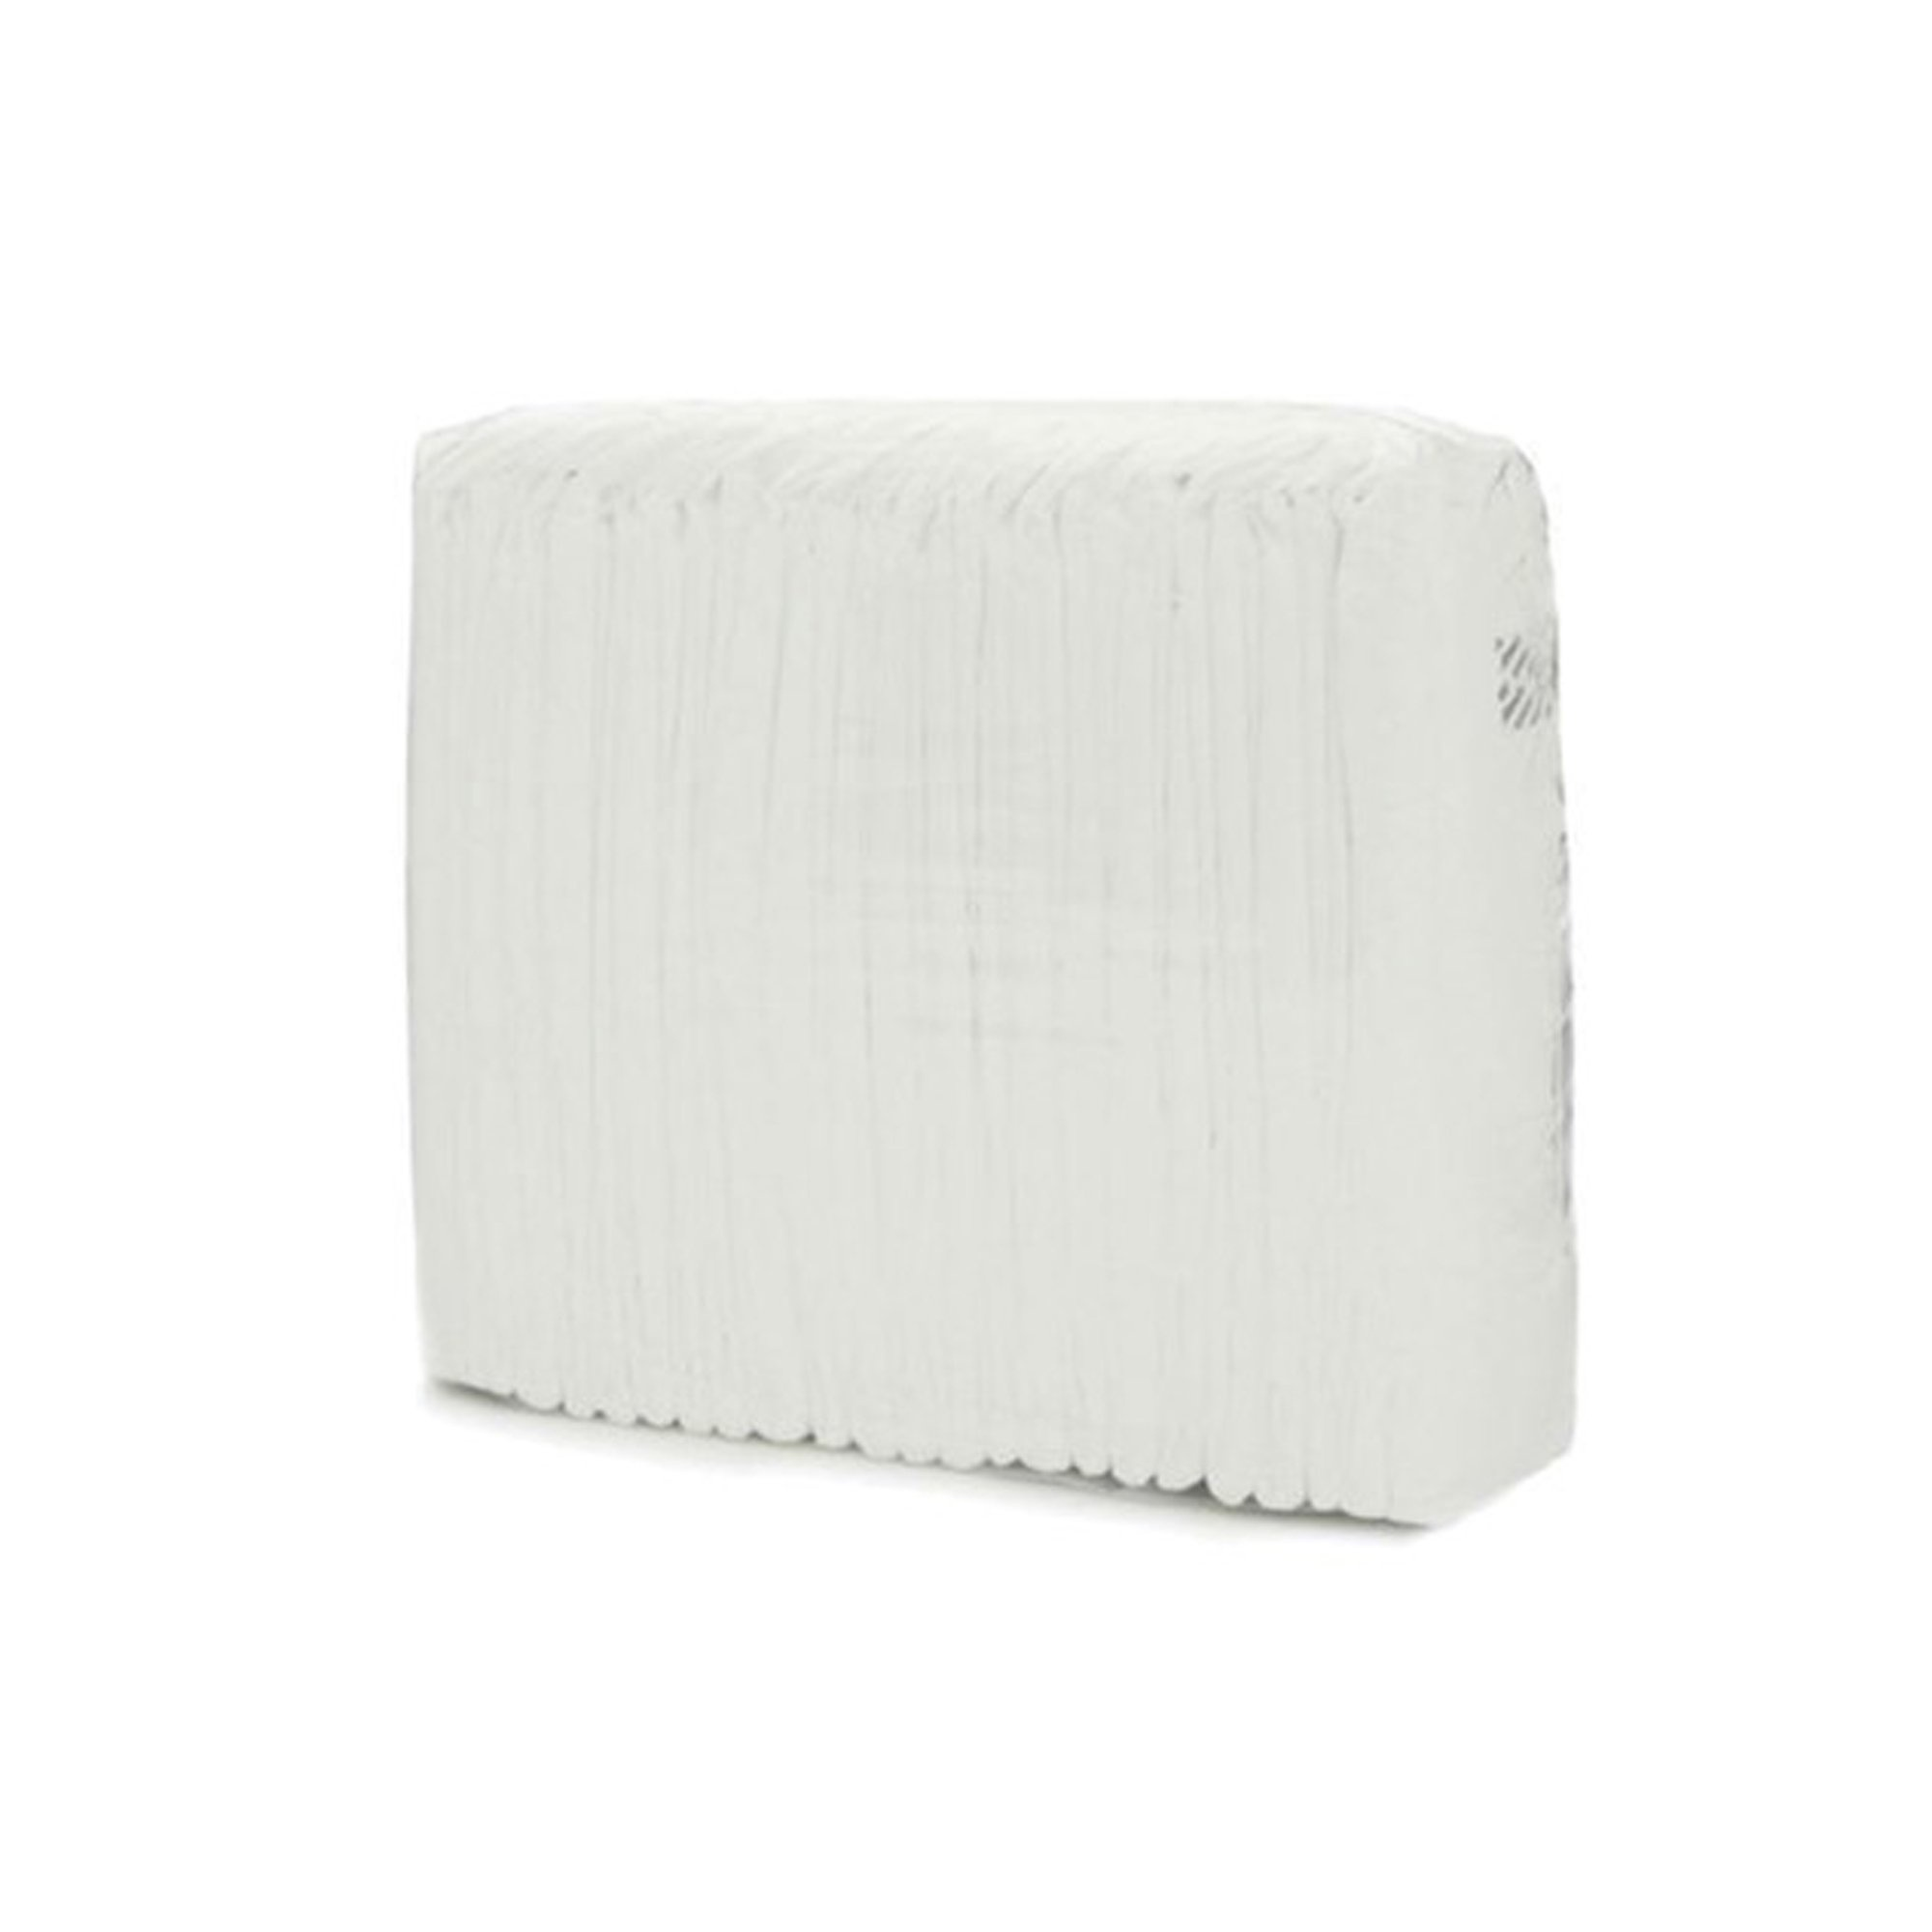 """Attends Instert Pads, Moderate Absorbency, IP0400A, 18.75"""" - Case of 144 (4 Packs)"""